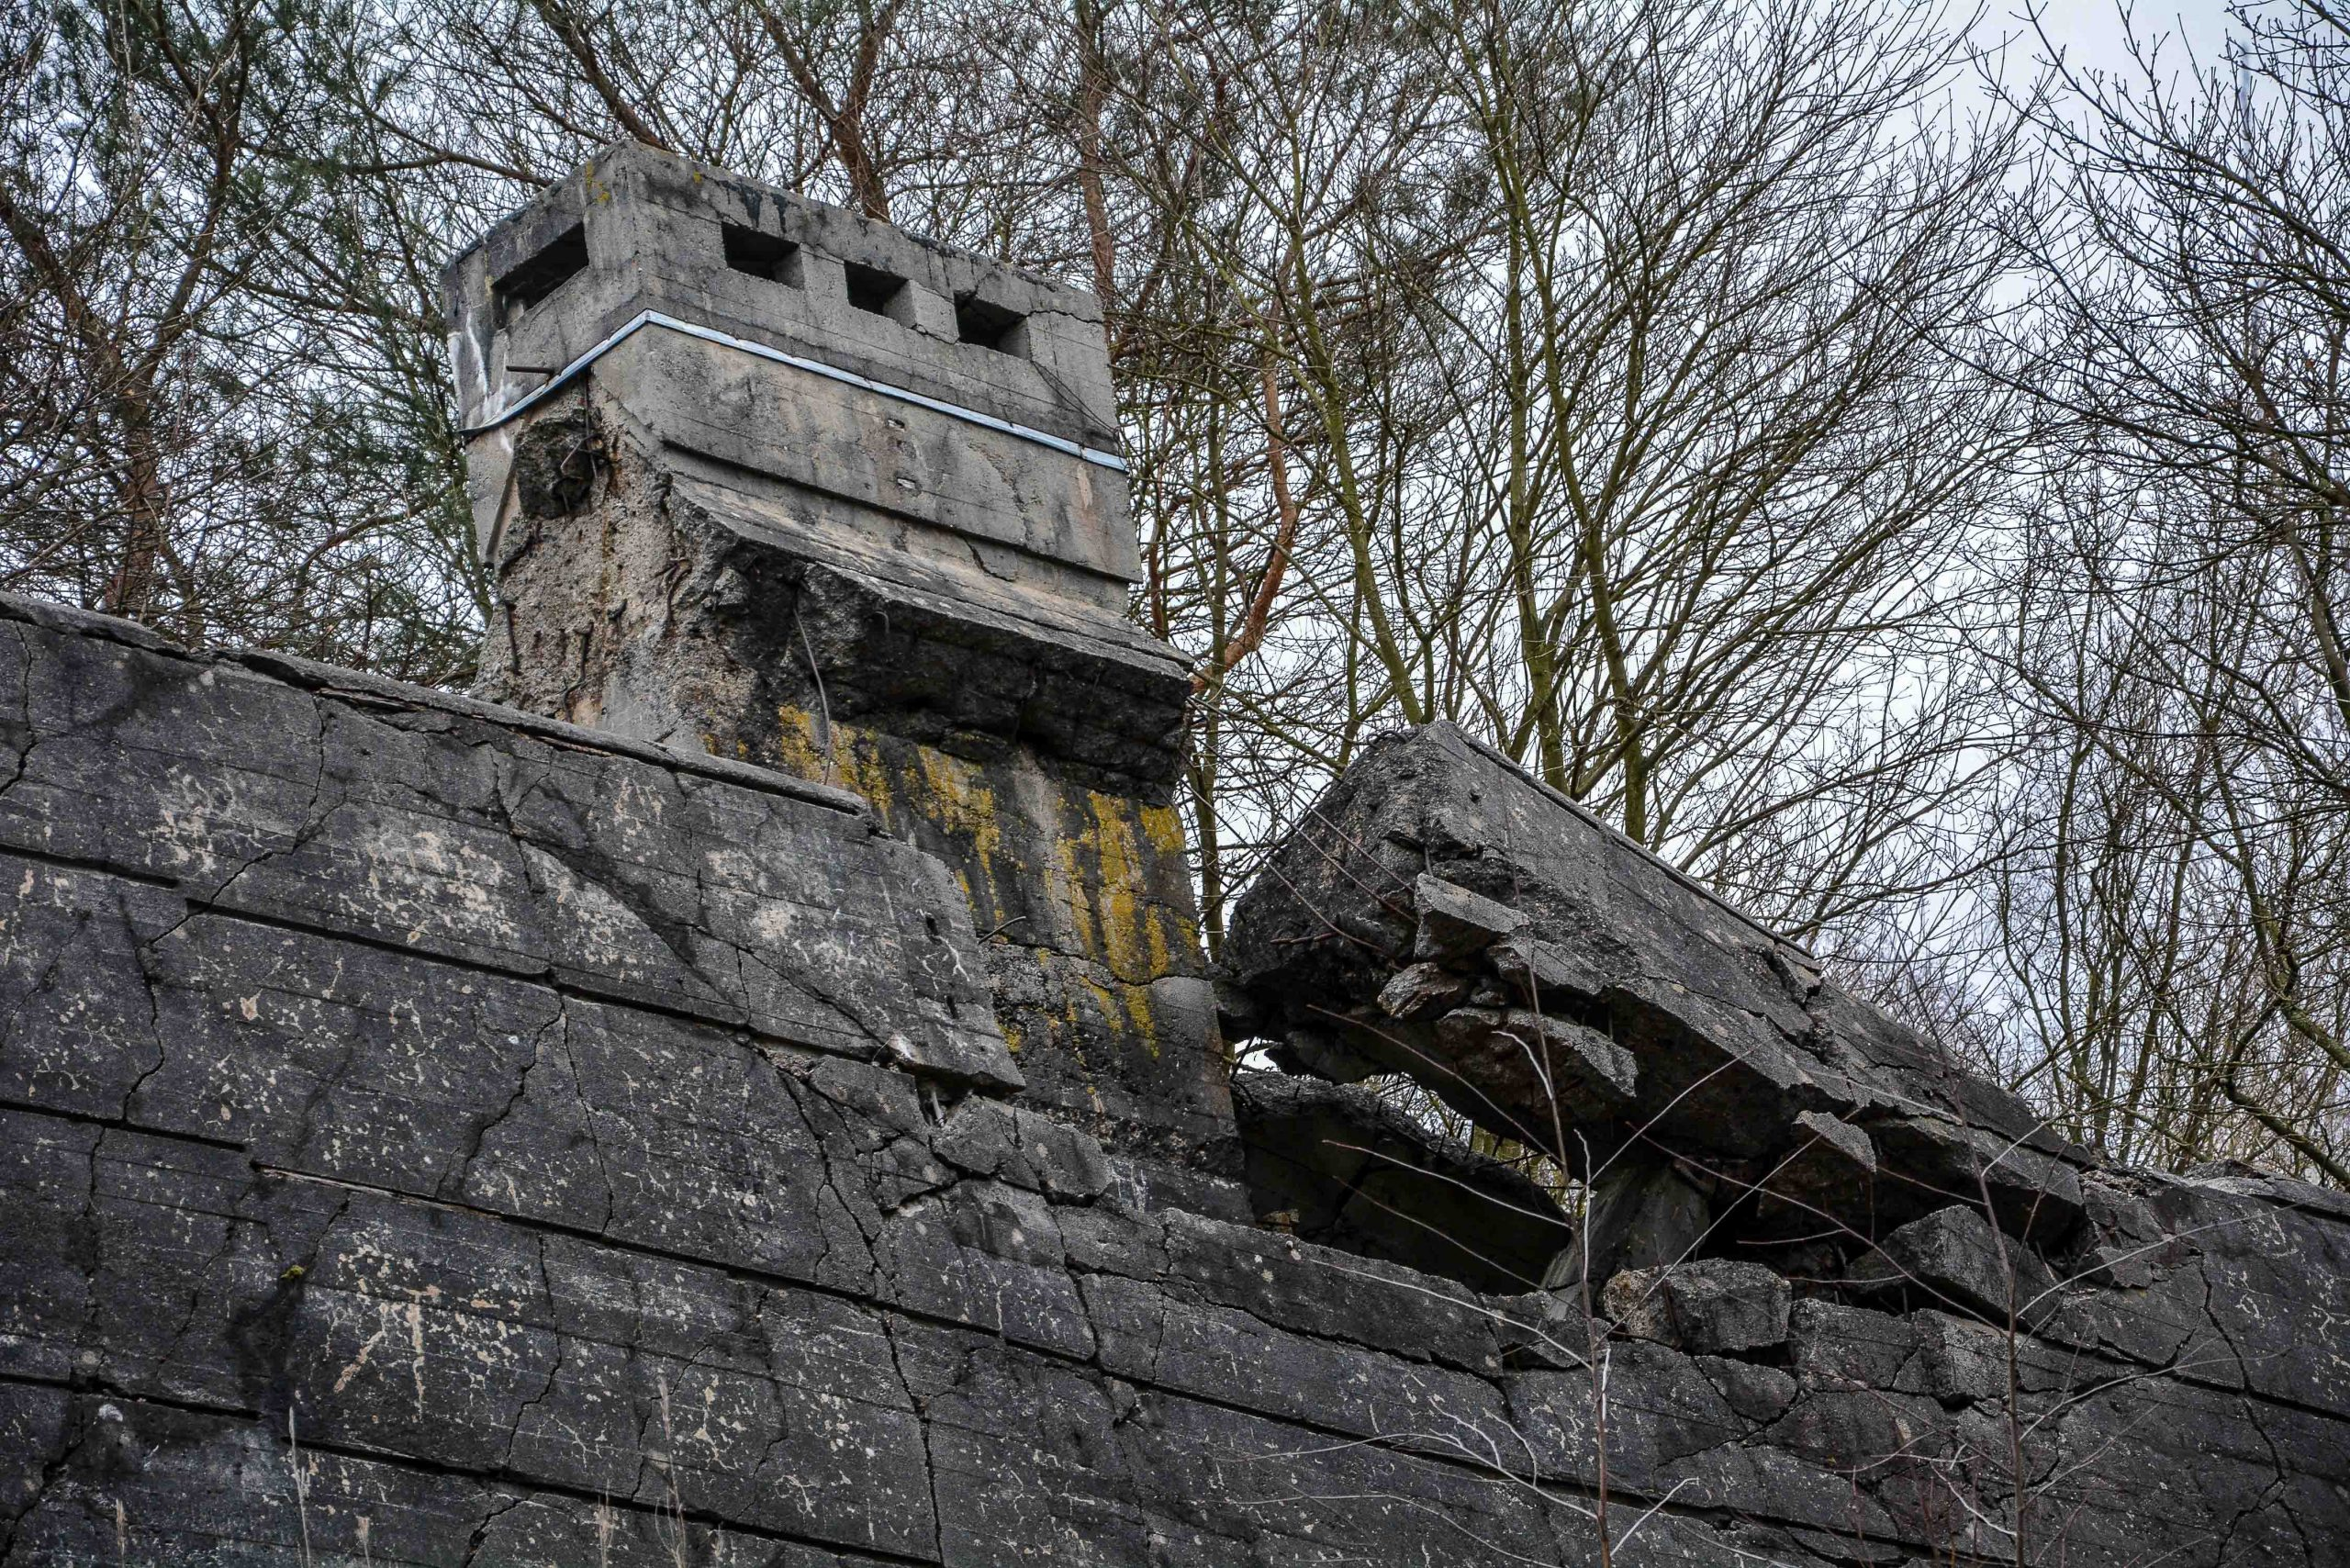 maybach I chimney bunker zeppelin amt 500 maybach bunker ranet wehrmacht sowjet soviet military zossen brandenburg germany lost palces urbex abandoned